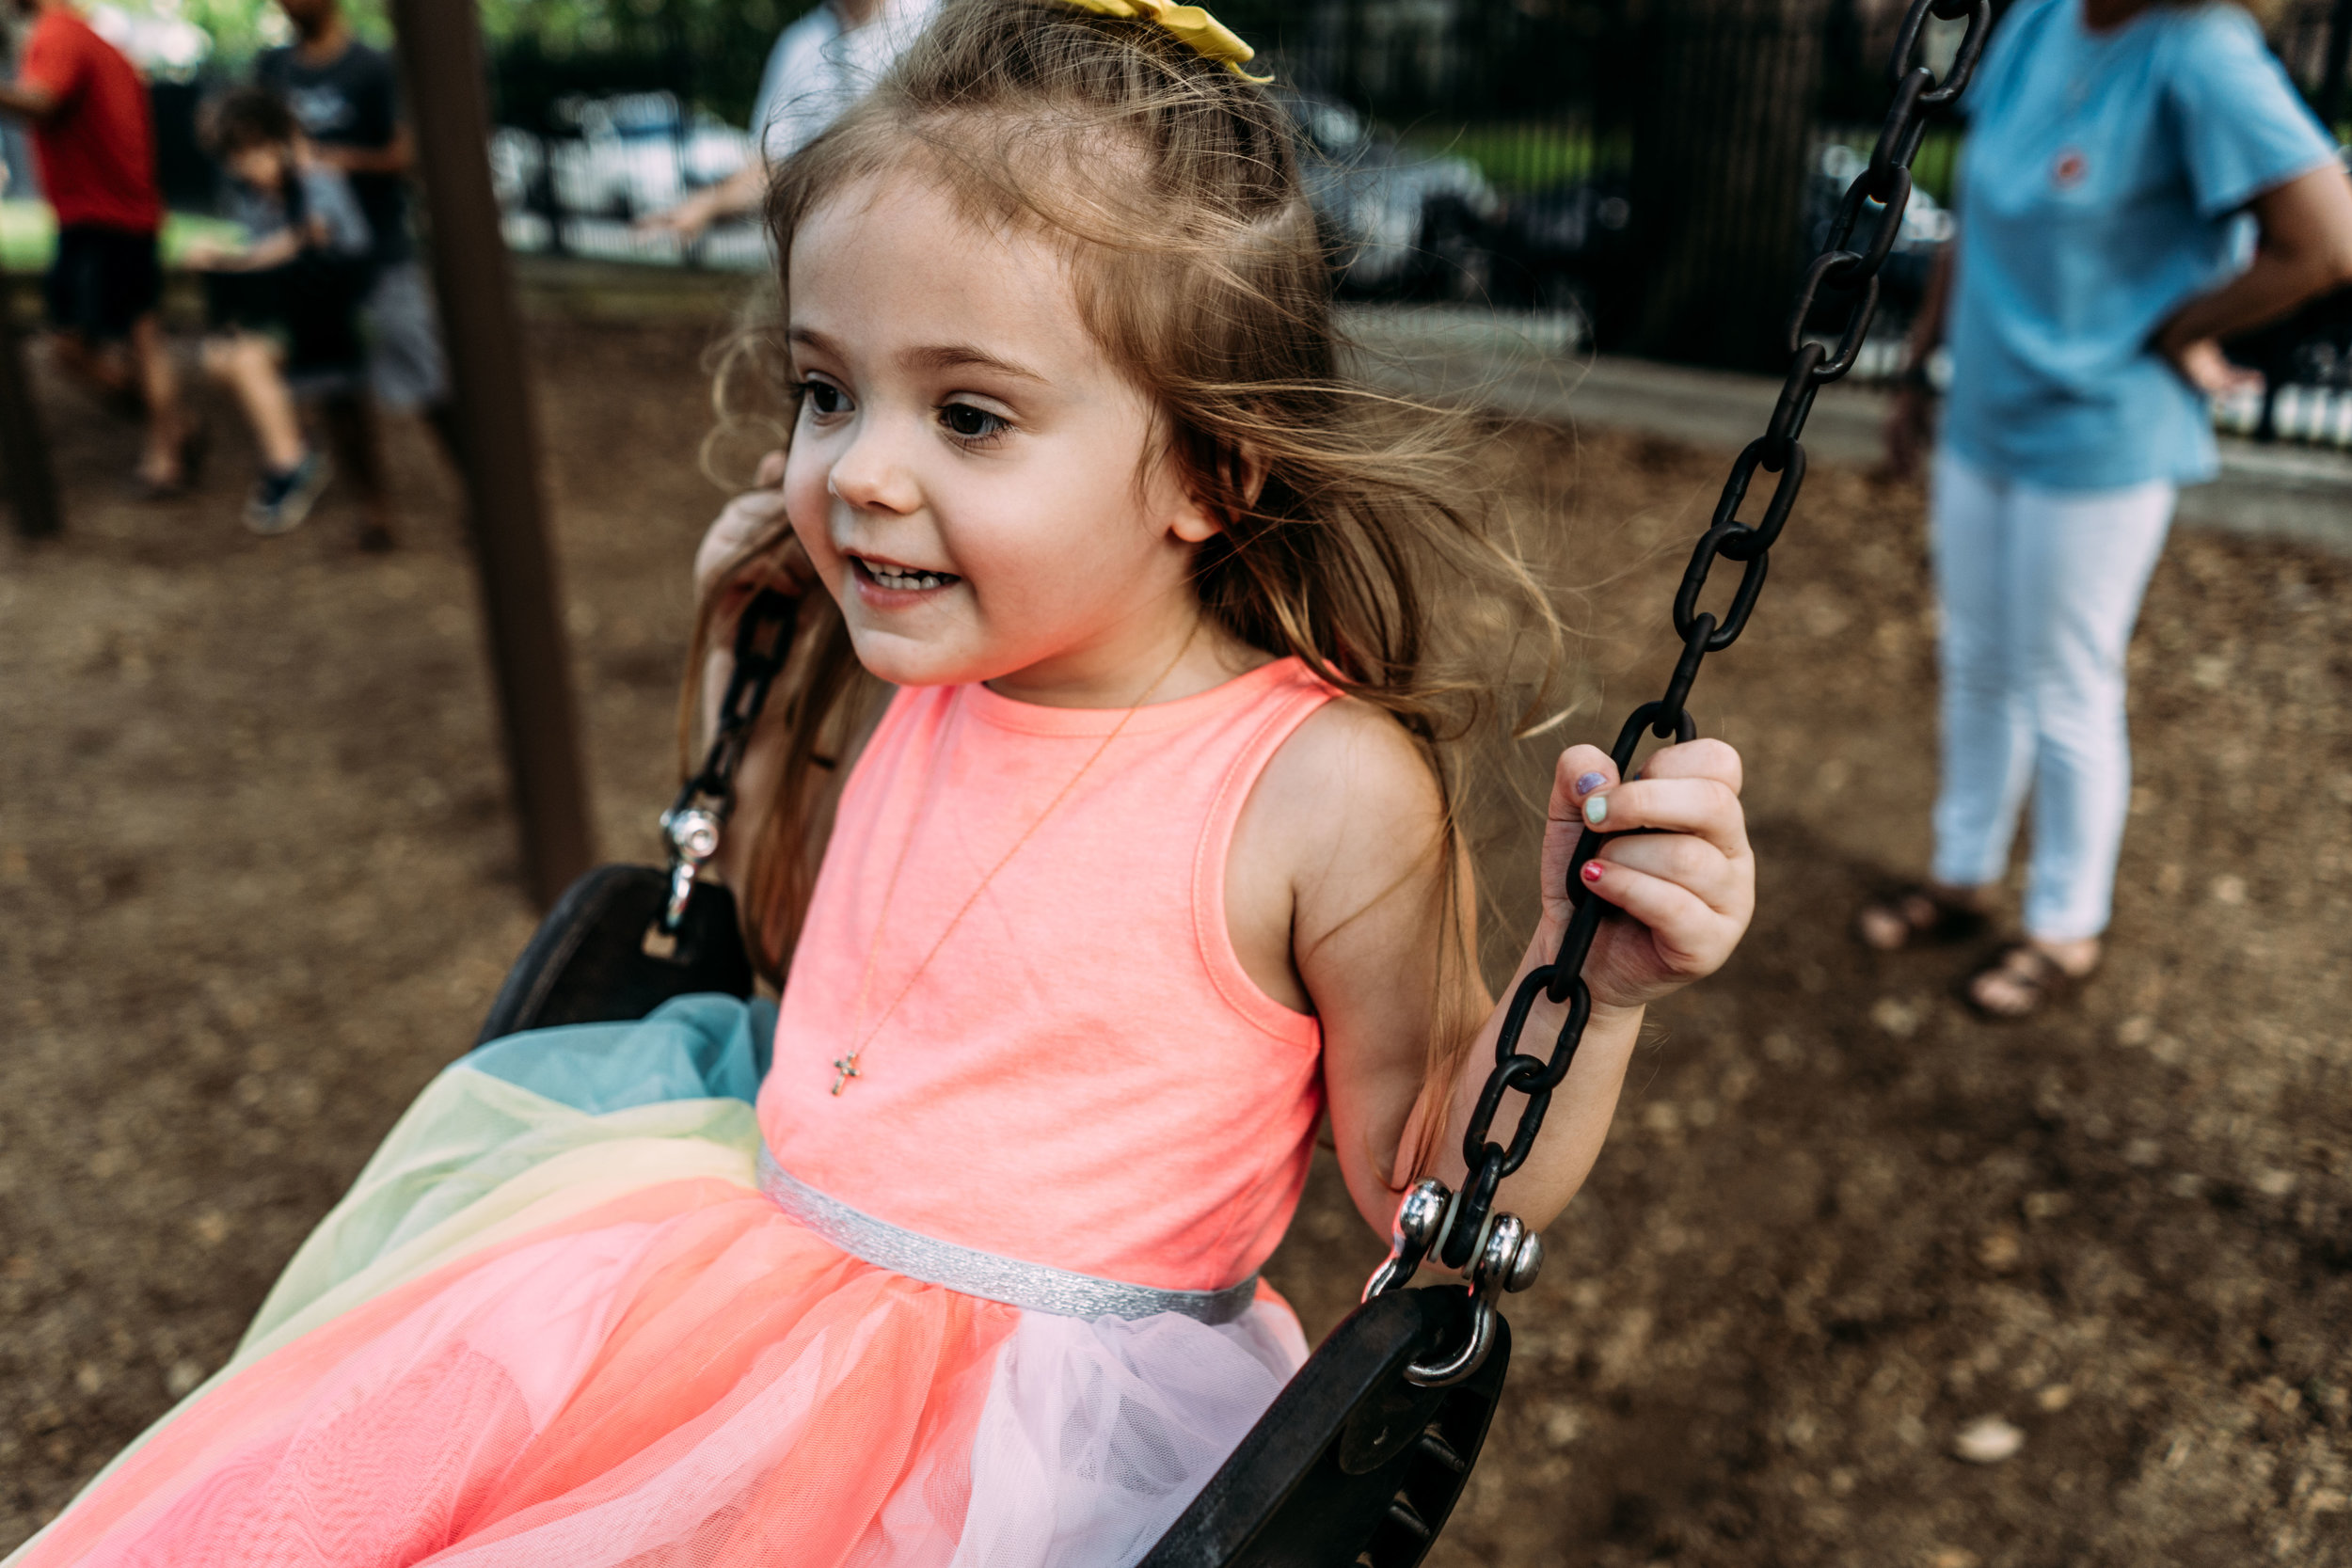 birthday party at the park-7.jpg